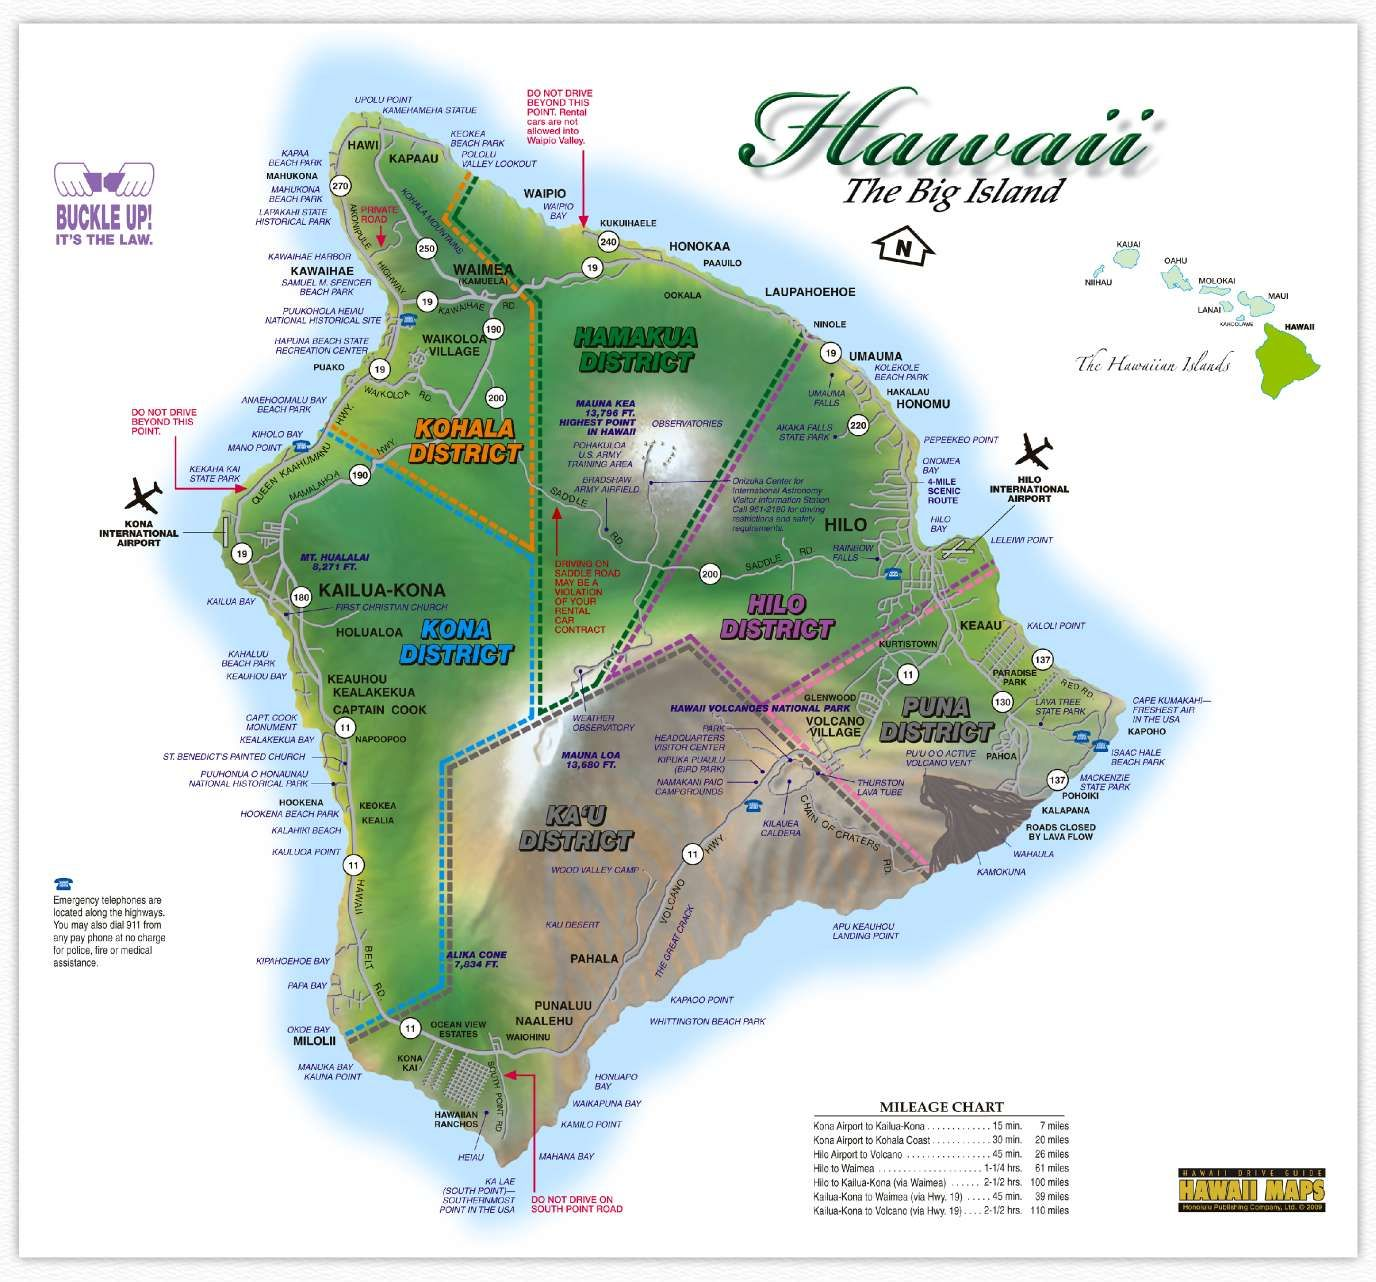 0cc79c33c4 Hawaii Maps  Hawaii Island Map - This highly detailed rental car road map  of Hawaii features highways